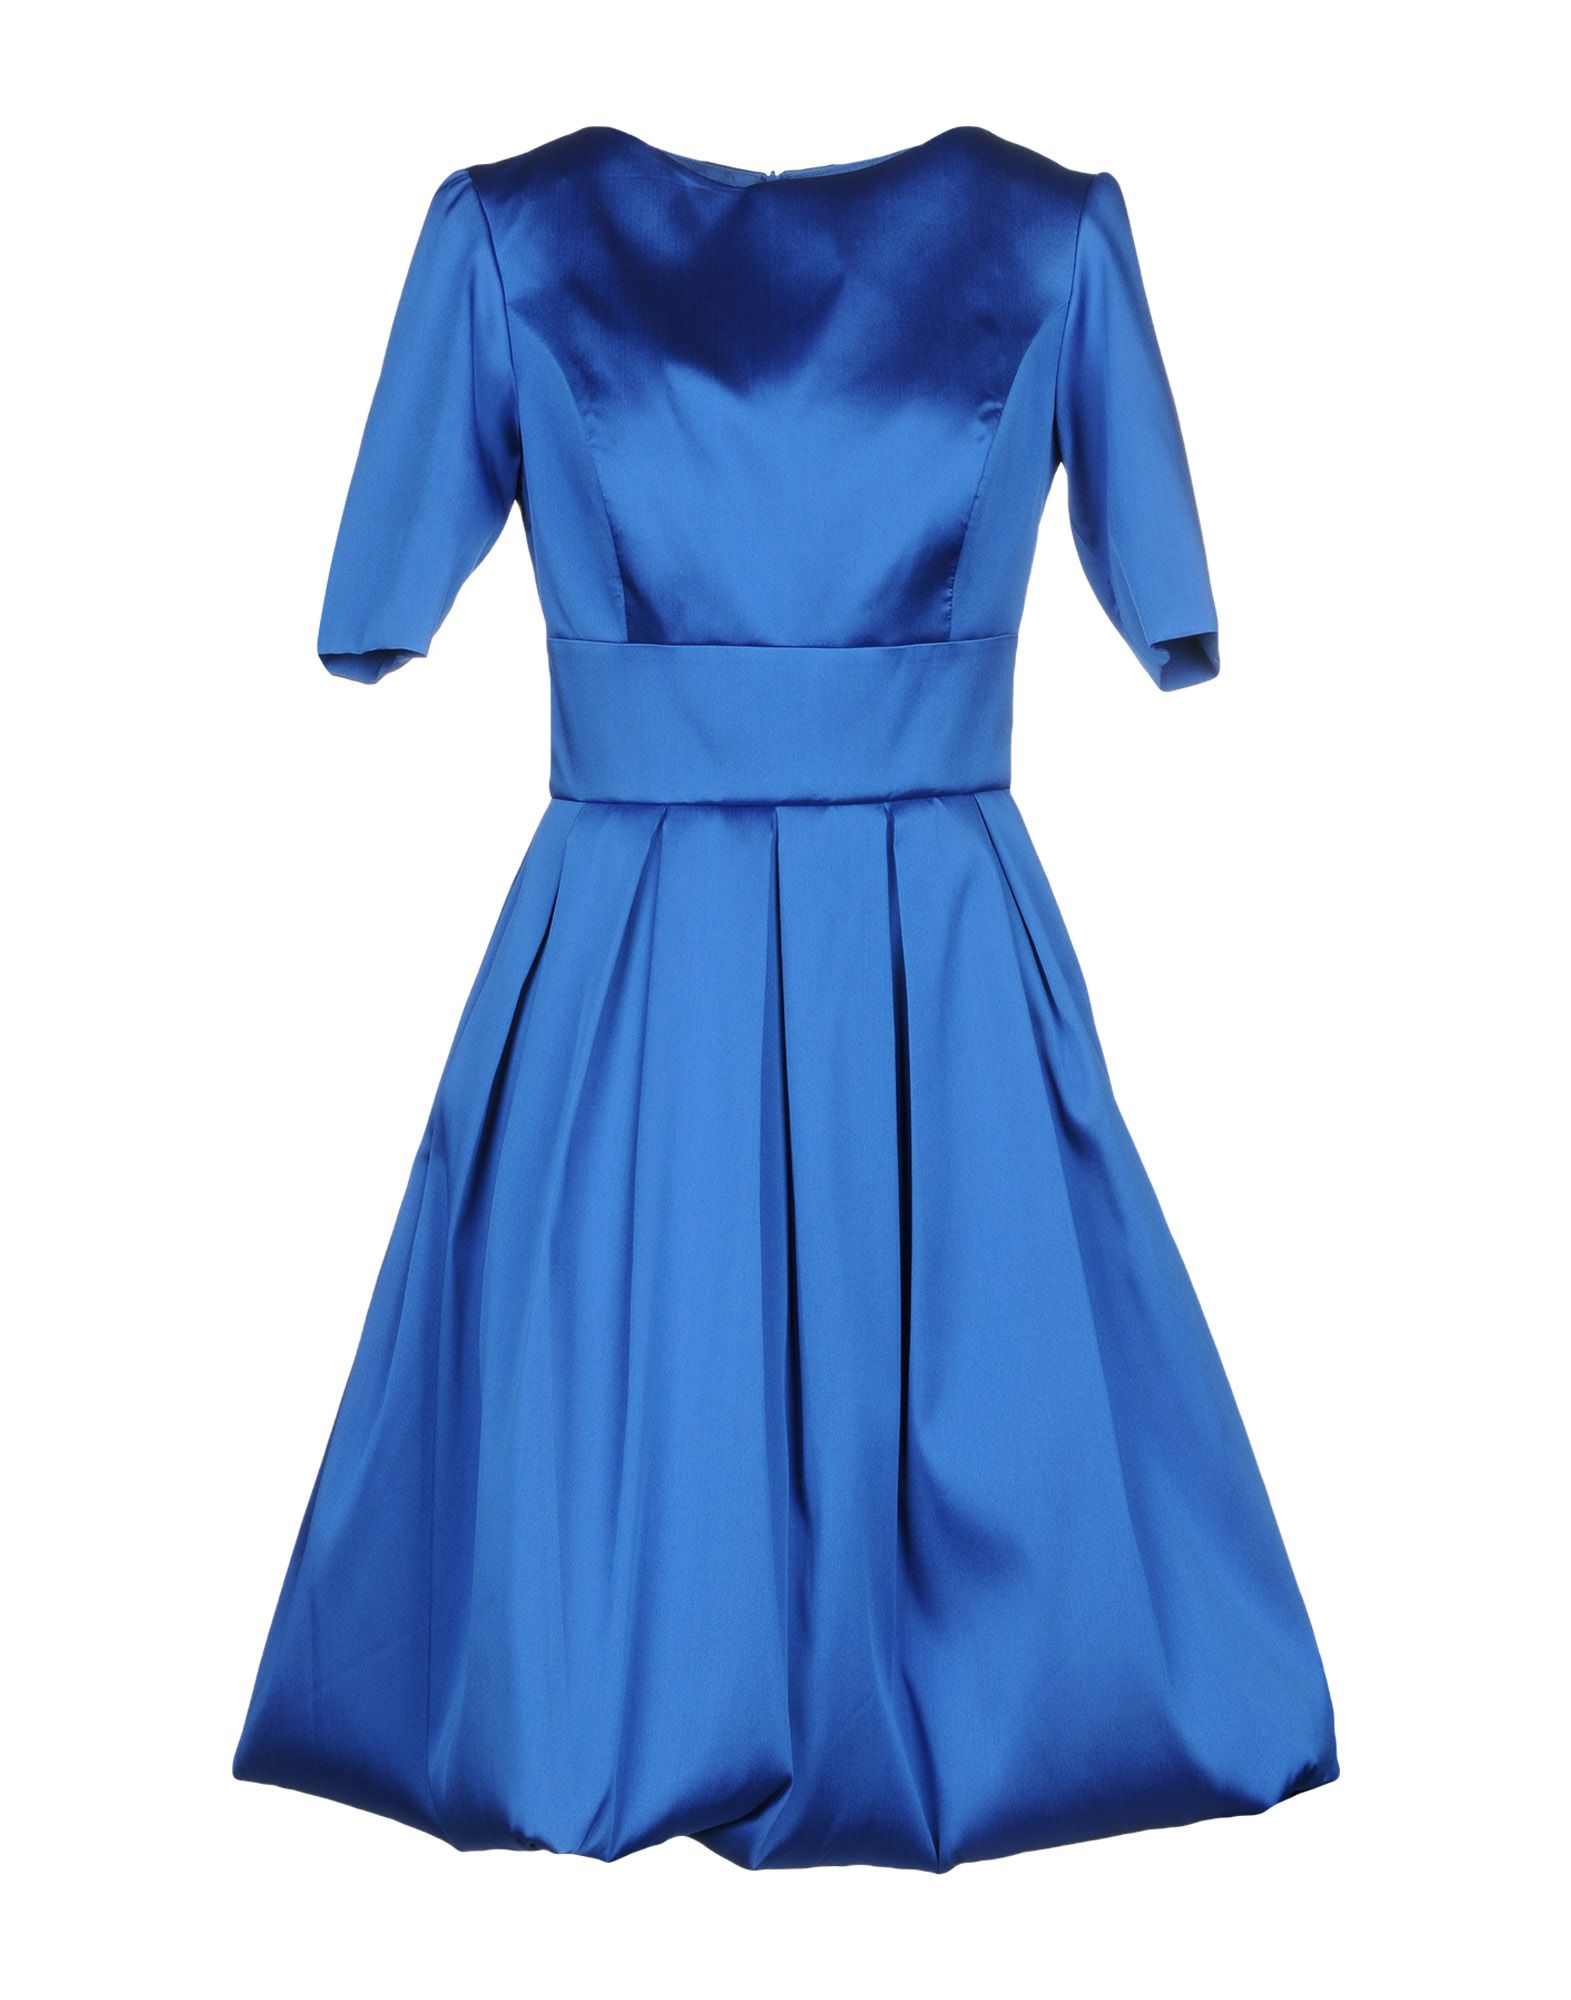 IO COUTURE Knee-Length Dress in Blue